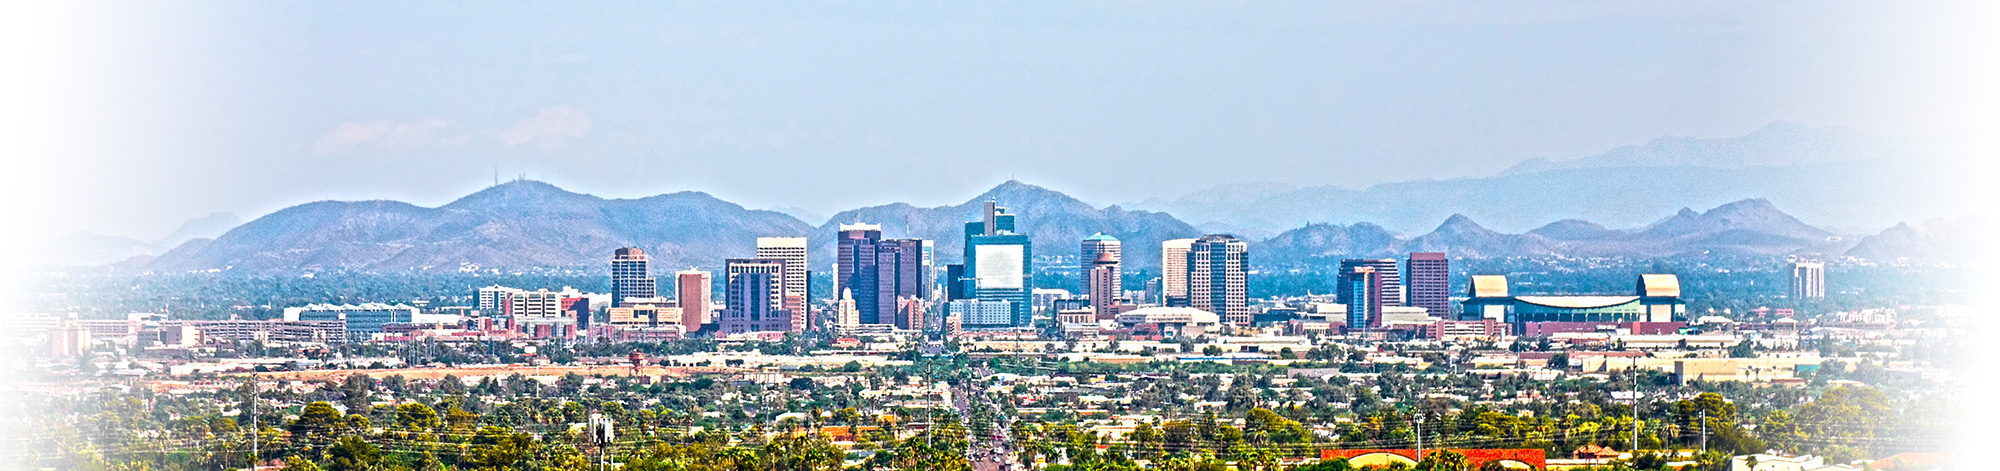 lawyer servicing phoenix mesa city